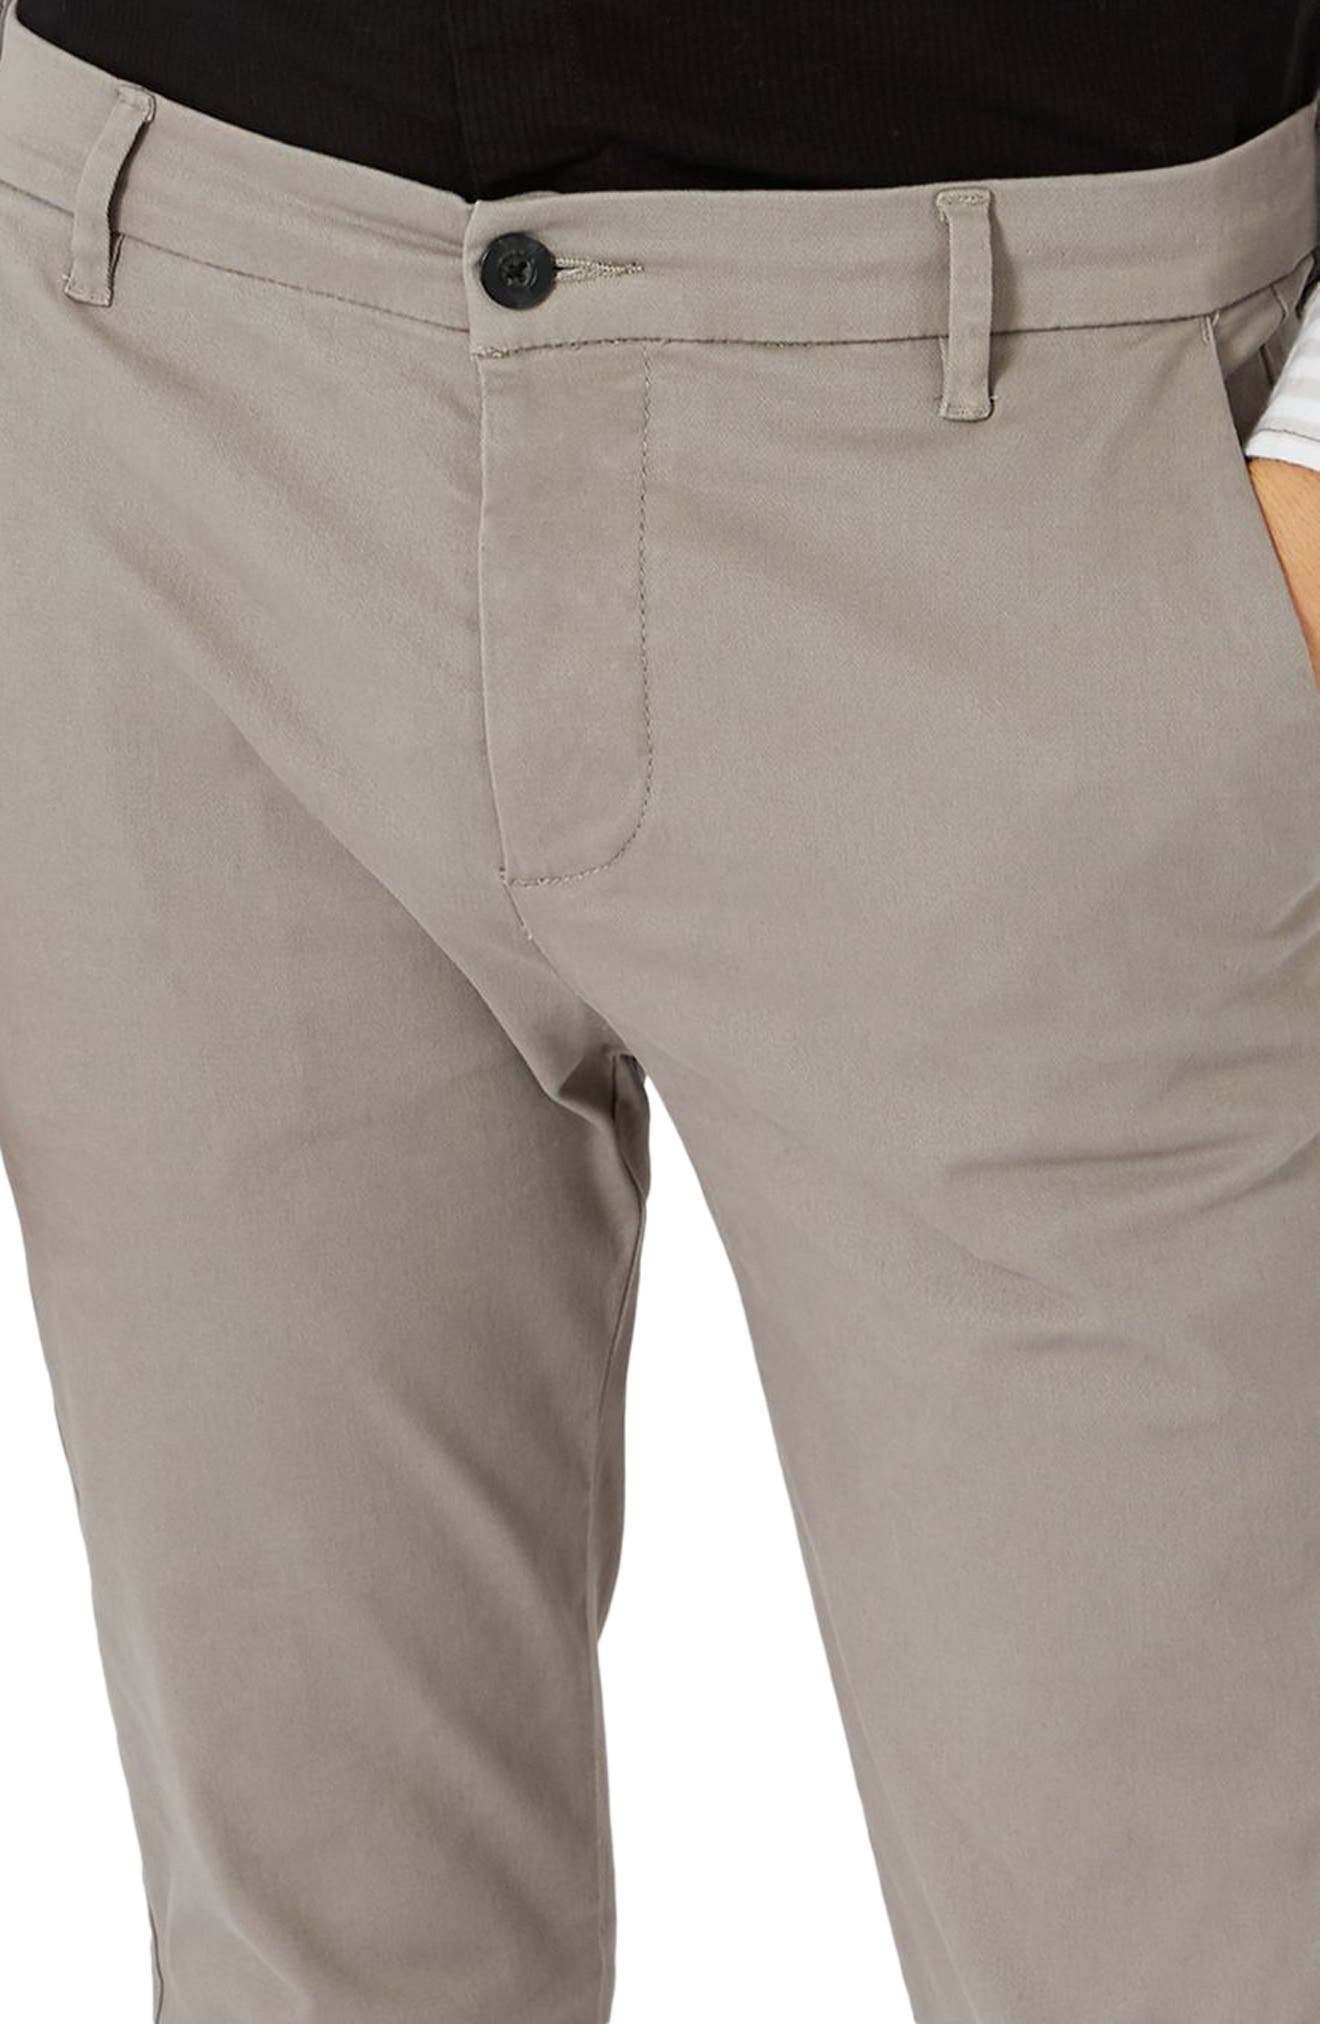 Skinny Fit Chinos,                             Alternate thumbnail 5, color,